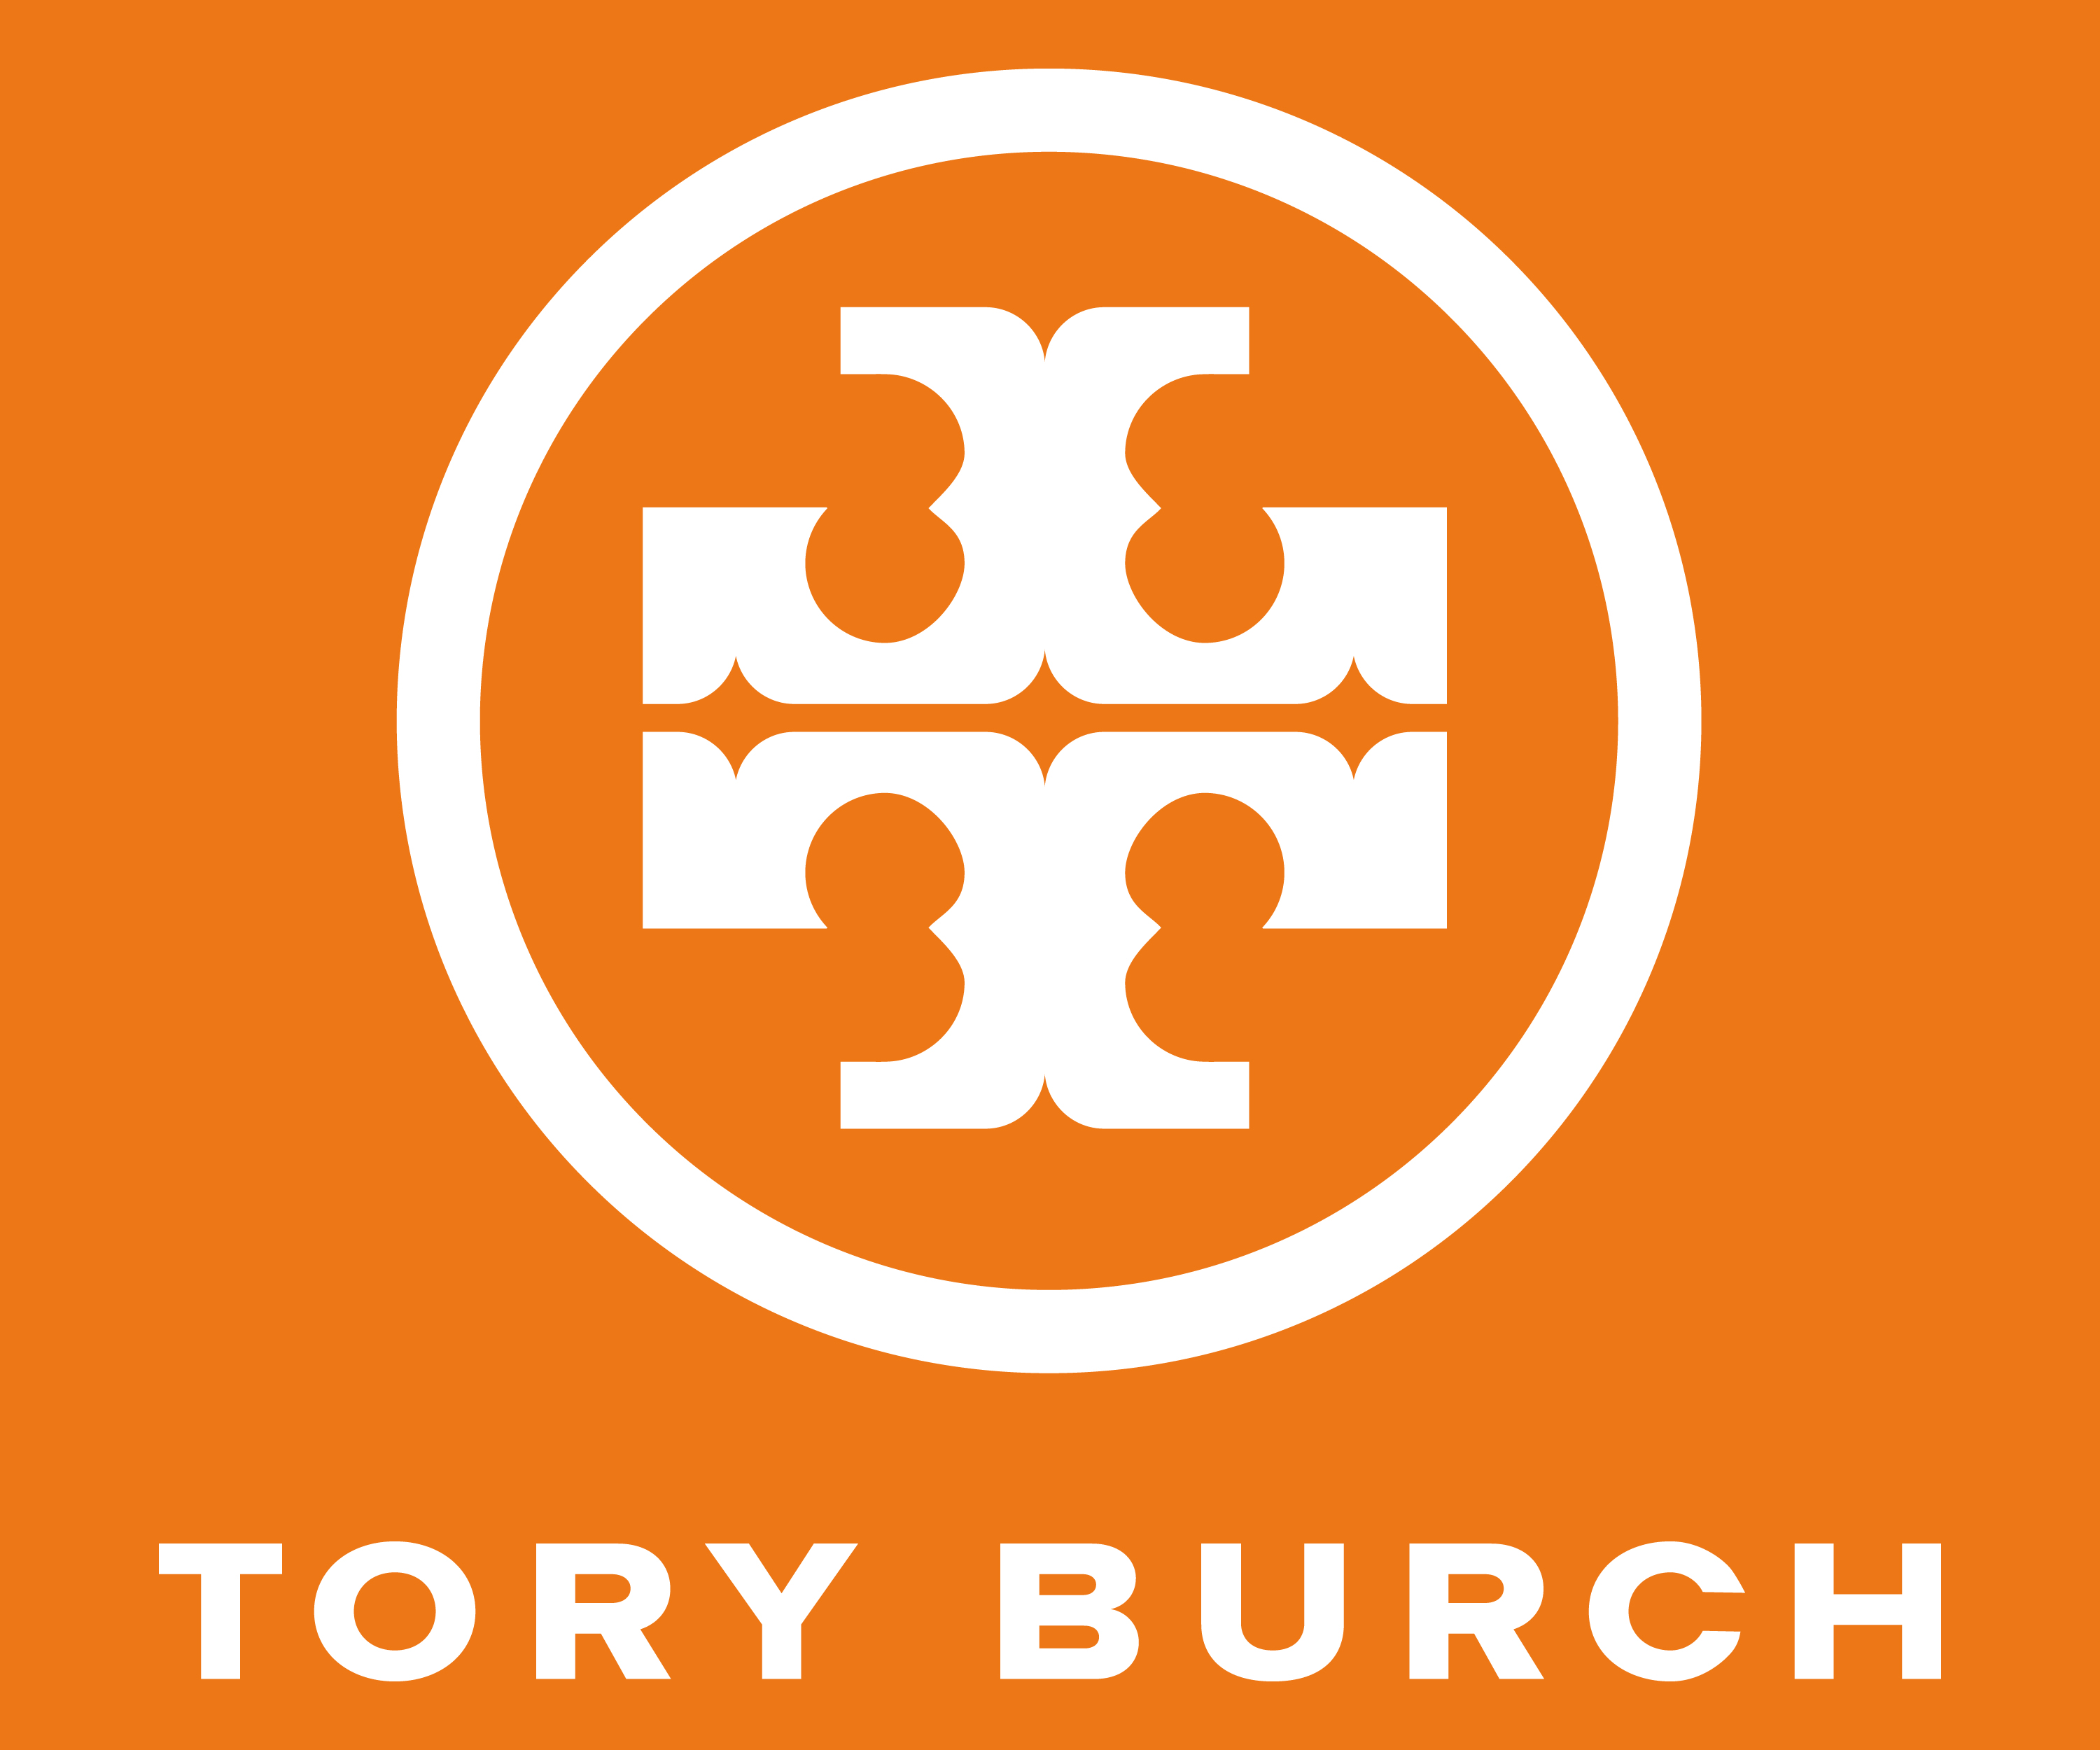 Home Interior Design Companies Tory Burch Logo Tory Burch Symbol Meaning History And